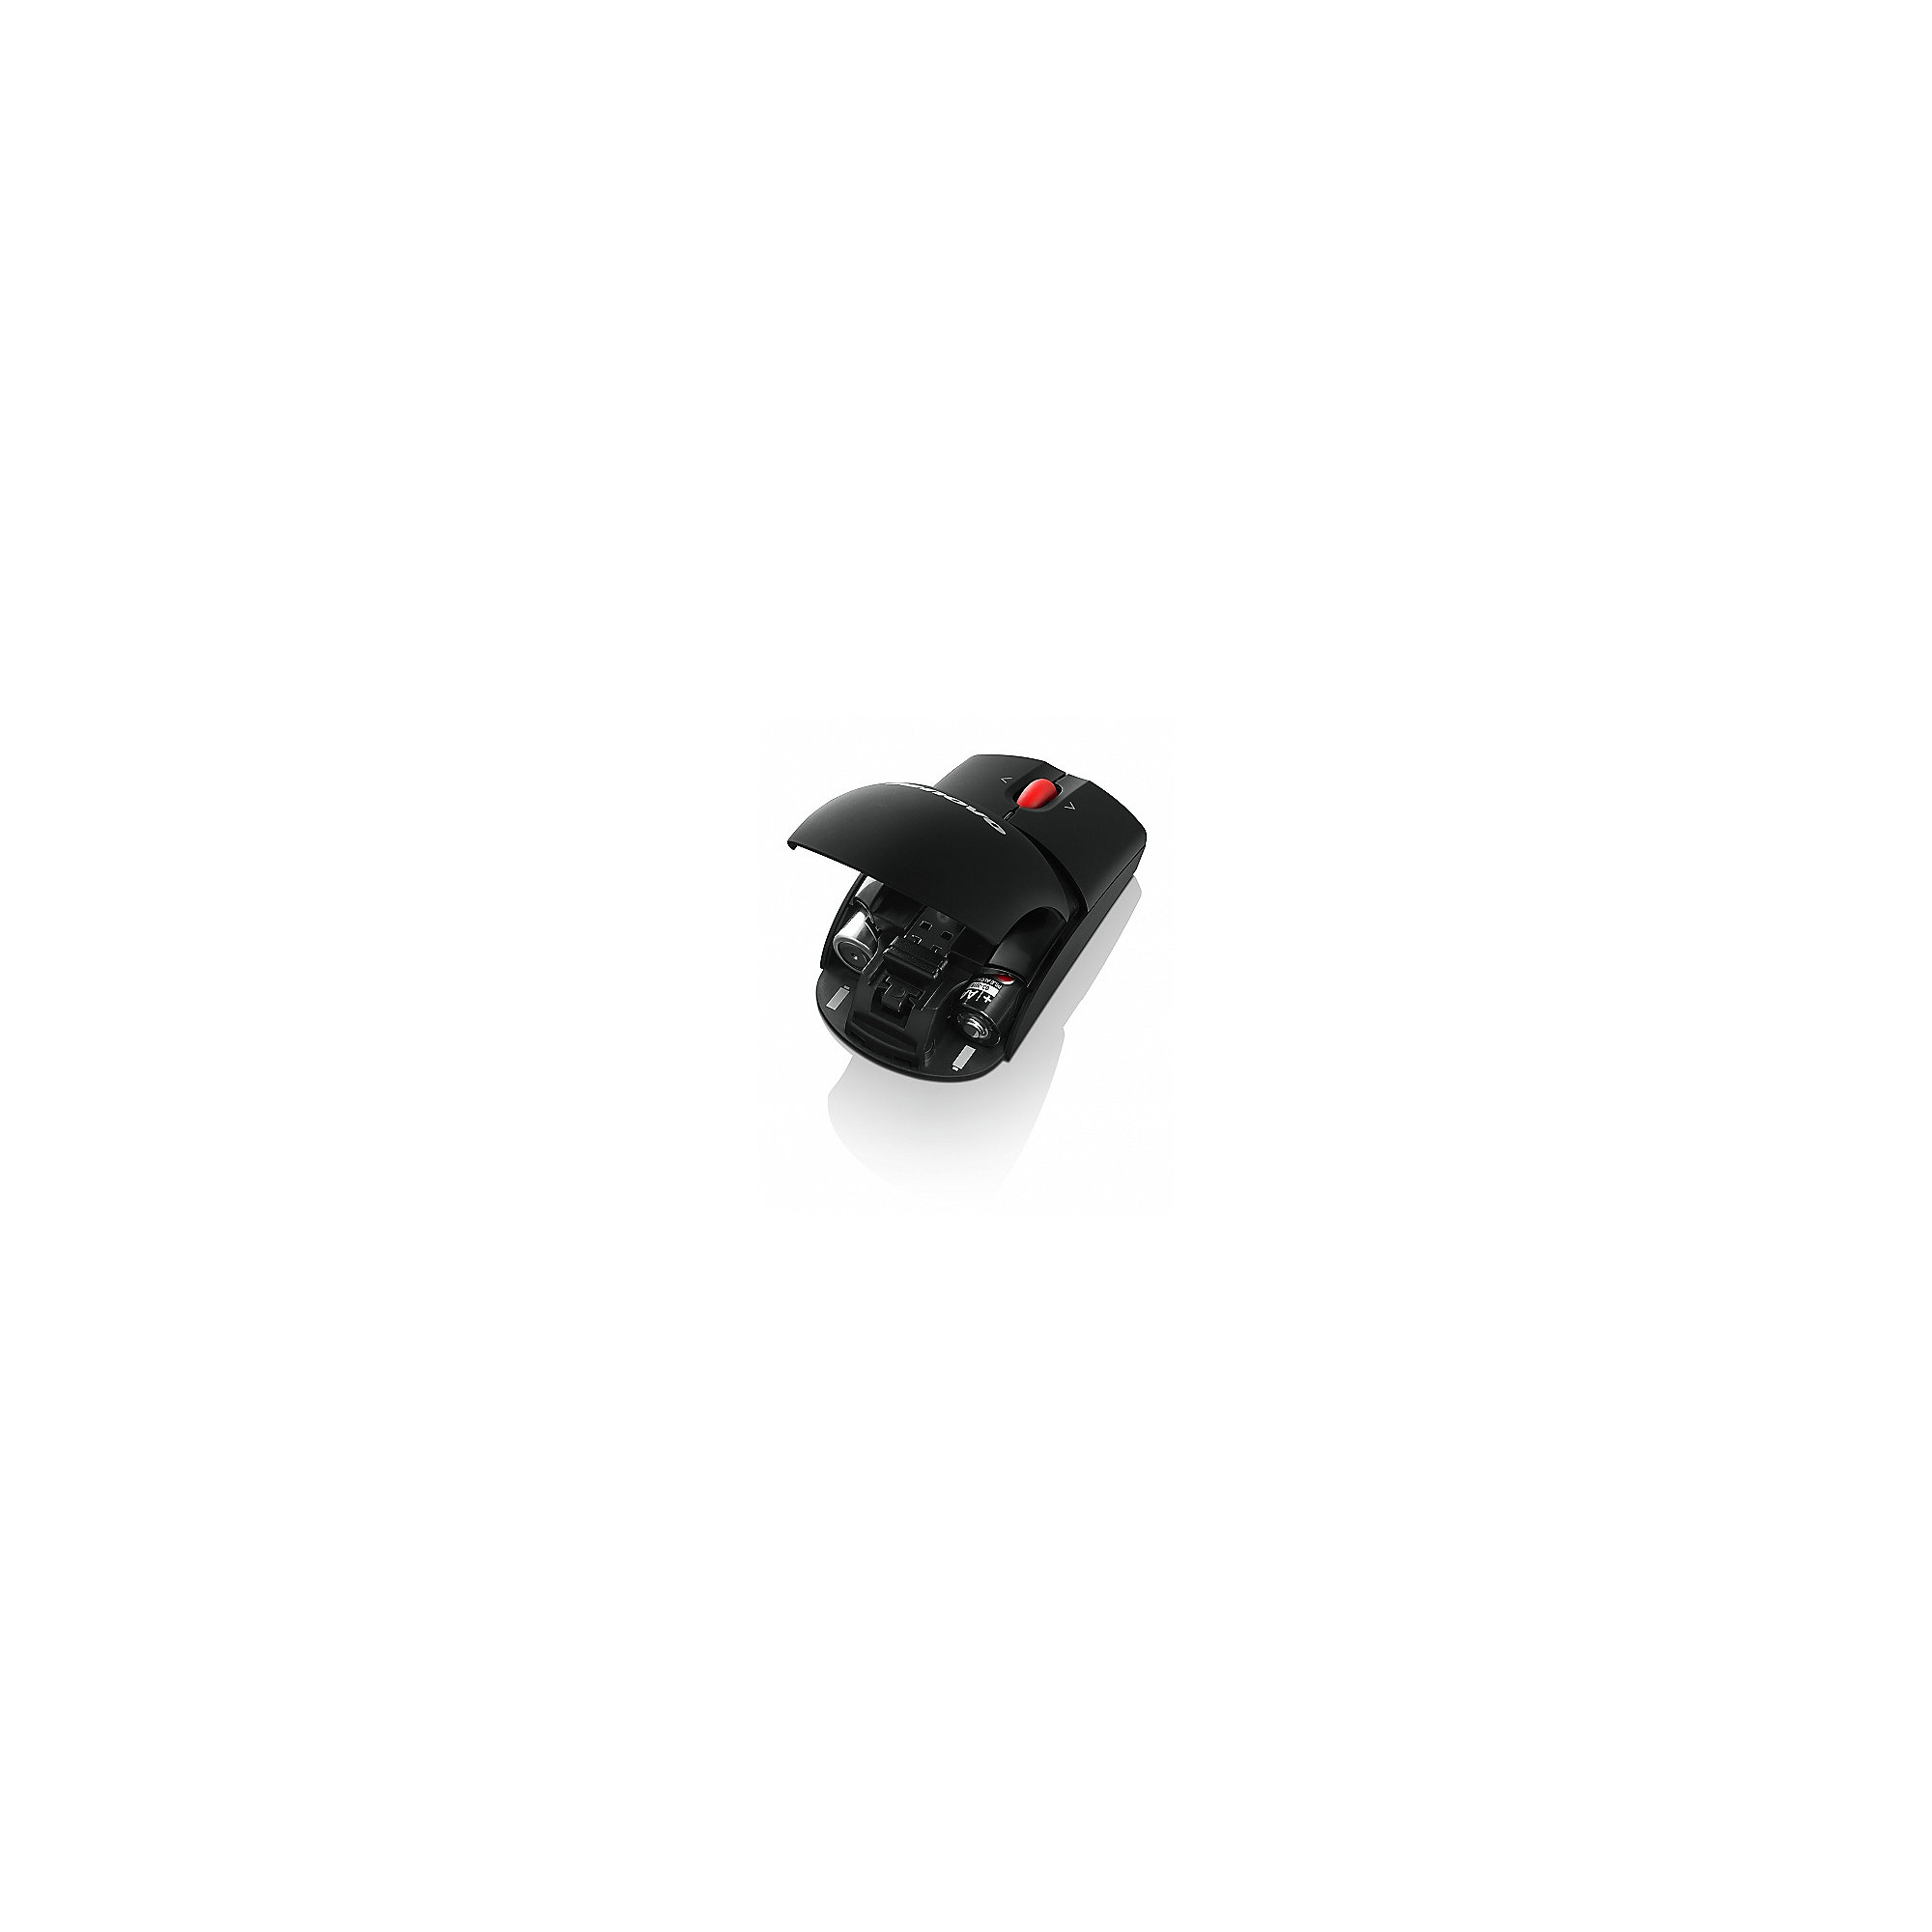 Lenovo Wireless Laser Mouse schwarz (0A36188)